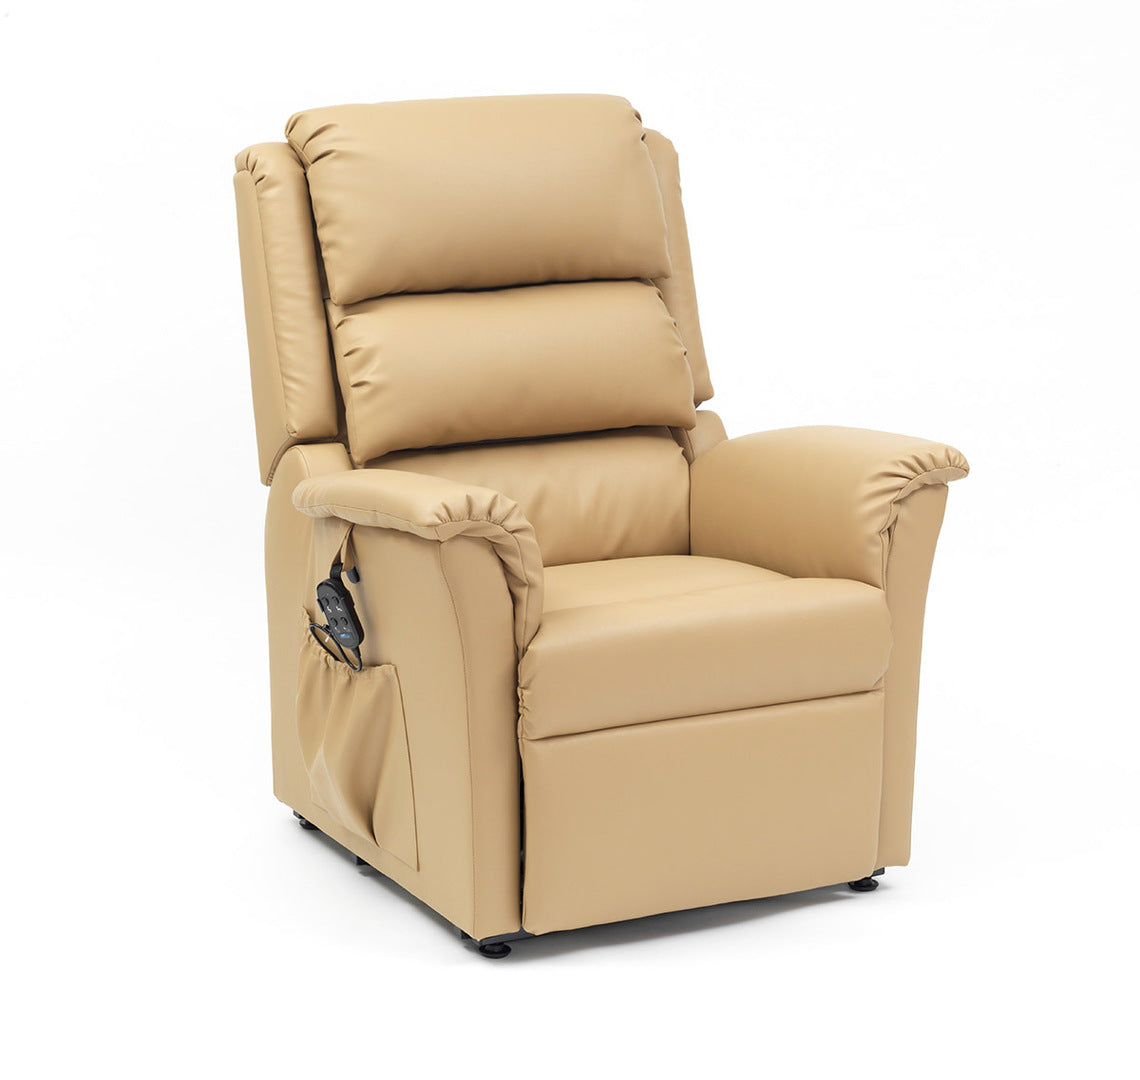 Restwell Nevada Anti-Microbial PVC Wipedown Rise and Recline Chair